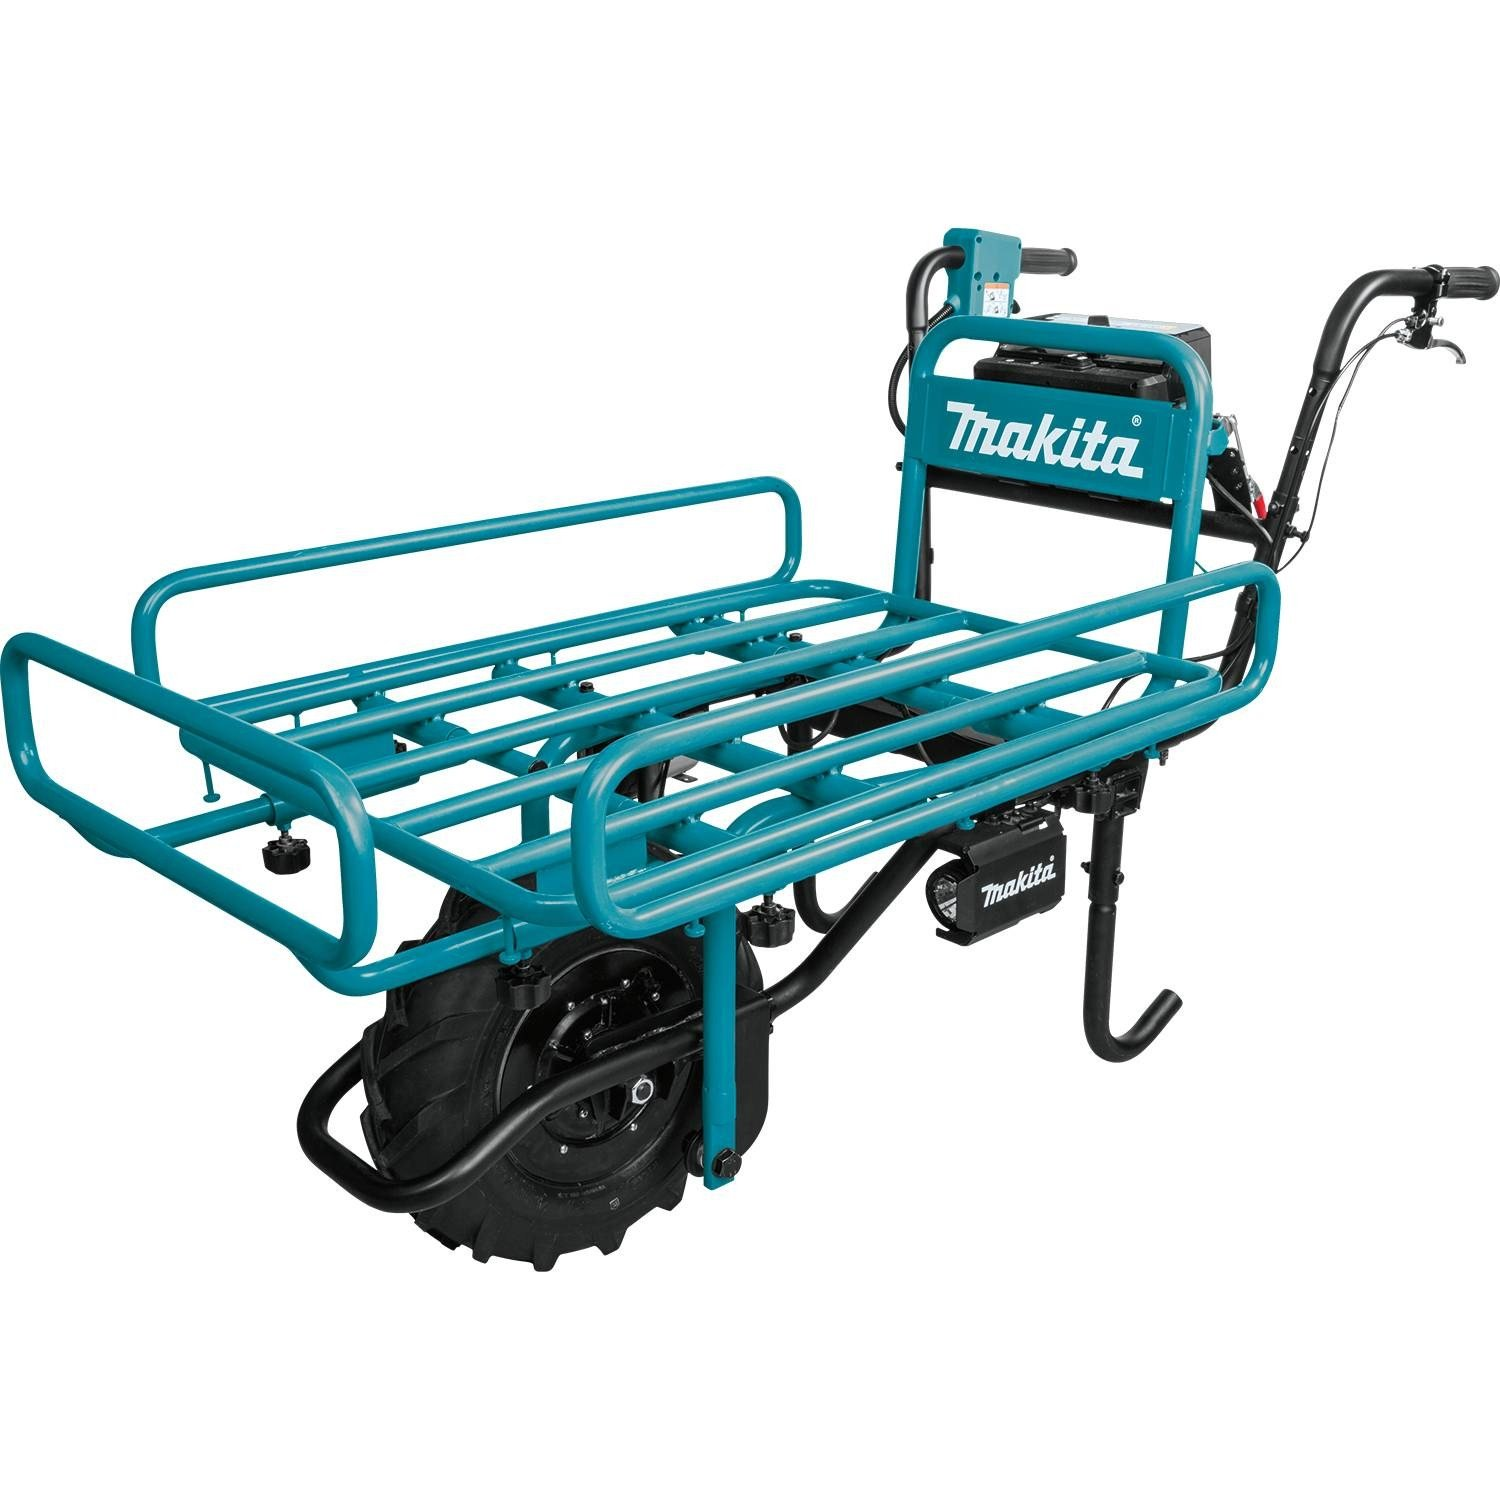 Makita XUC01X2 Power-Assisted Flat Dolly, Tool Only